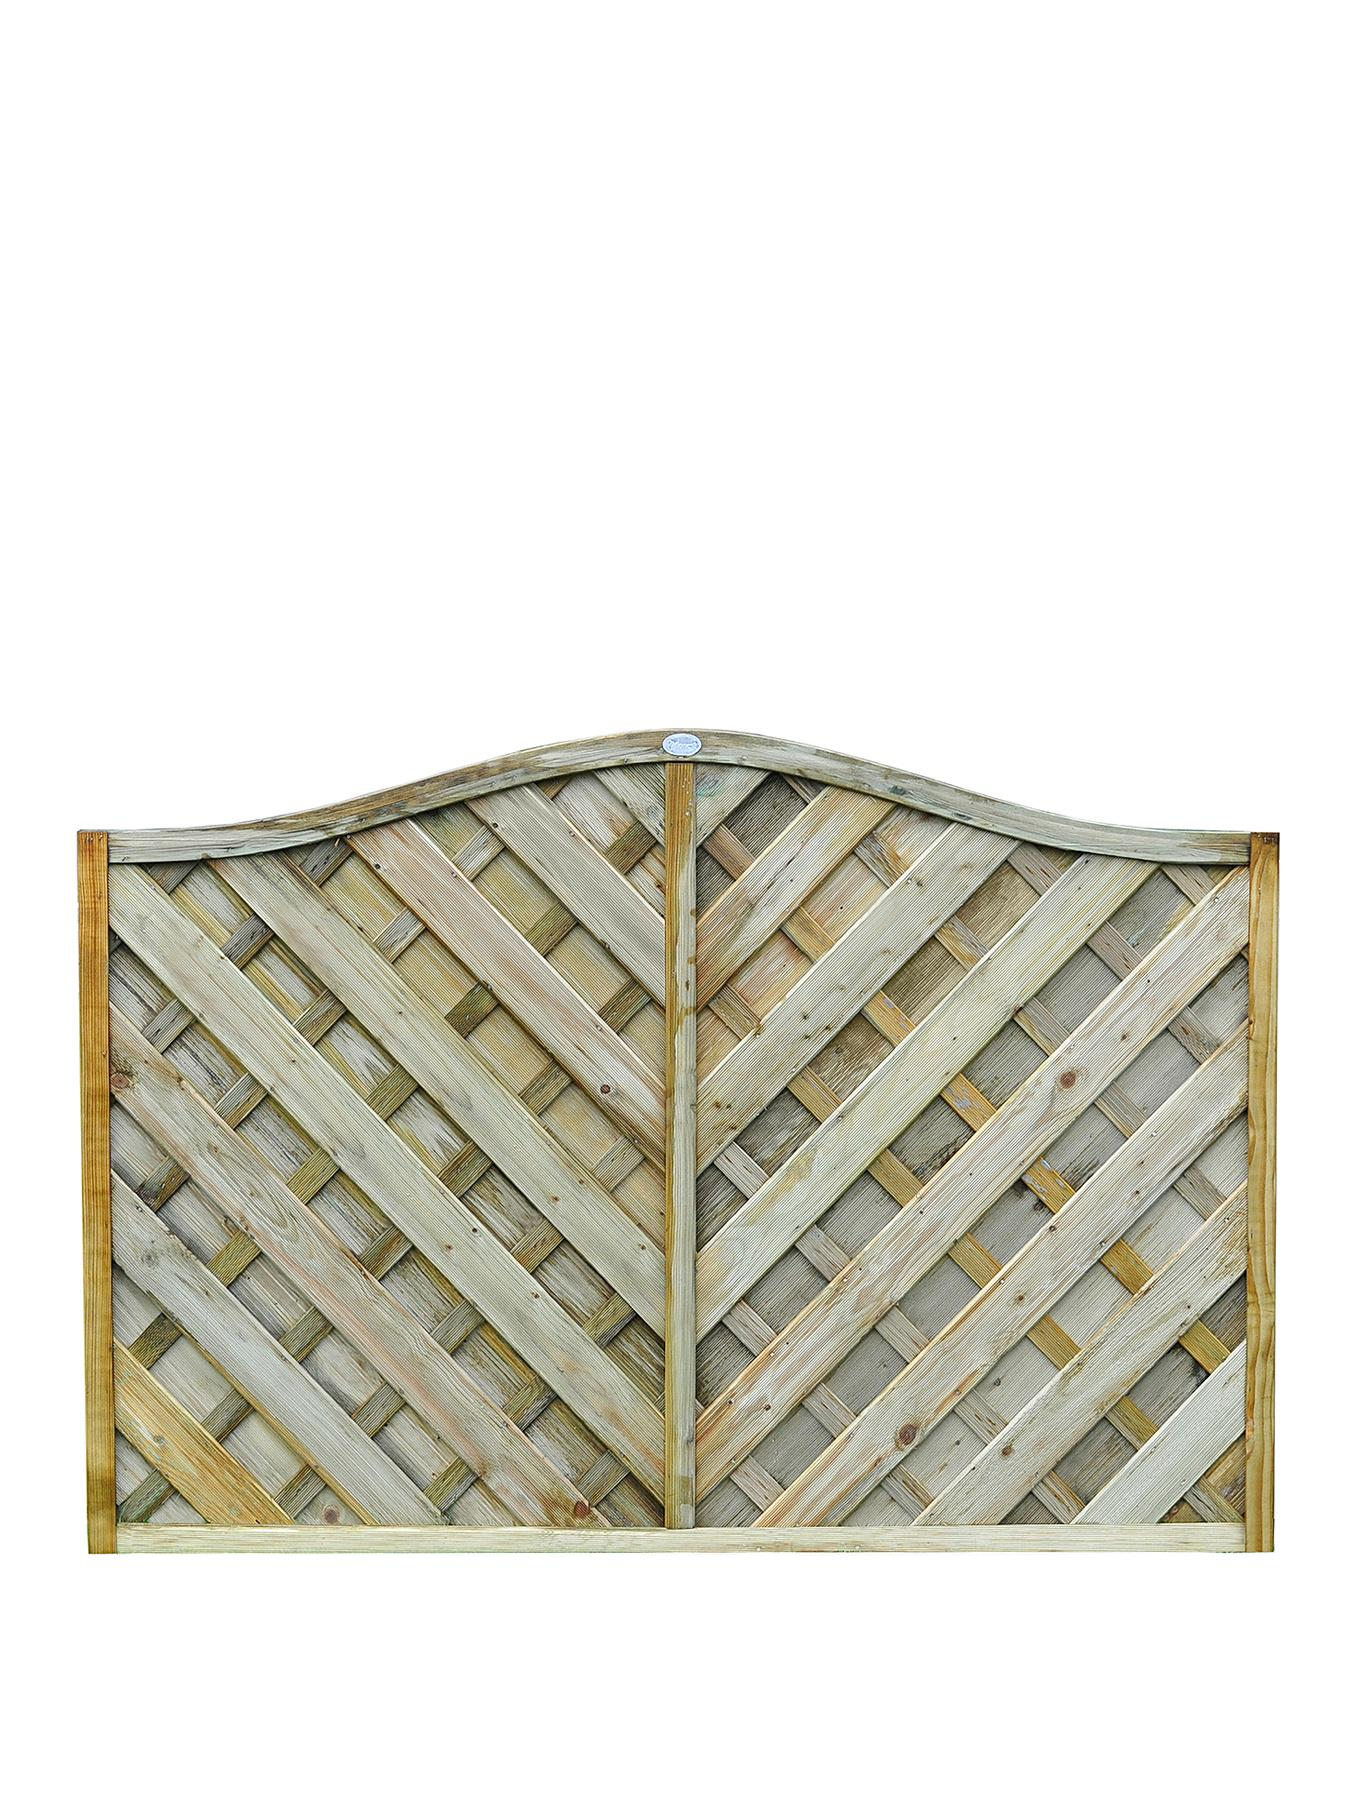 FOREST Garden Strasburg Fence Panles 1.8 x 1.2m High (5 Pack)